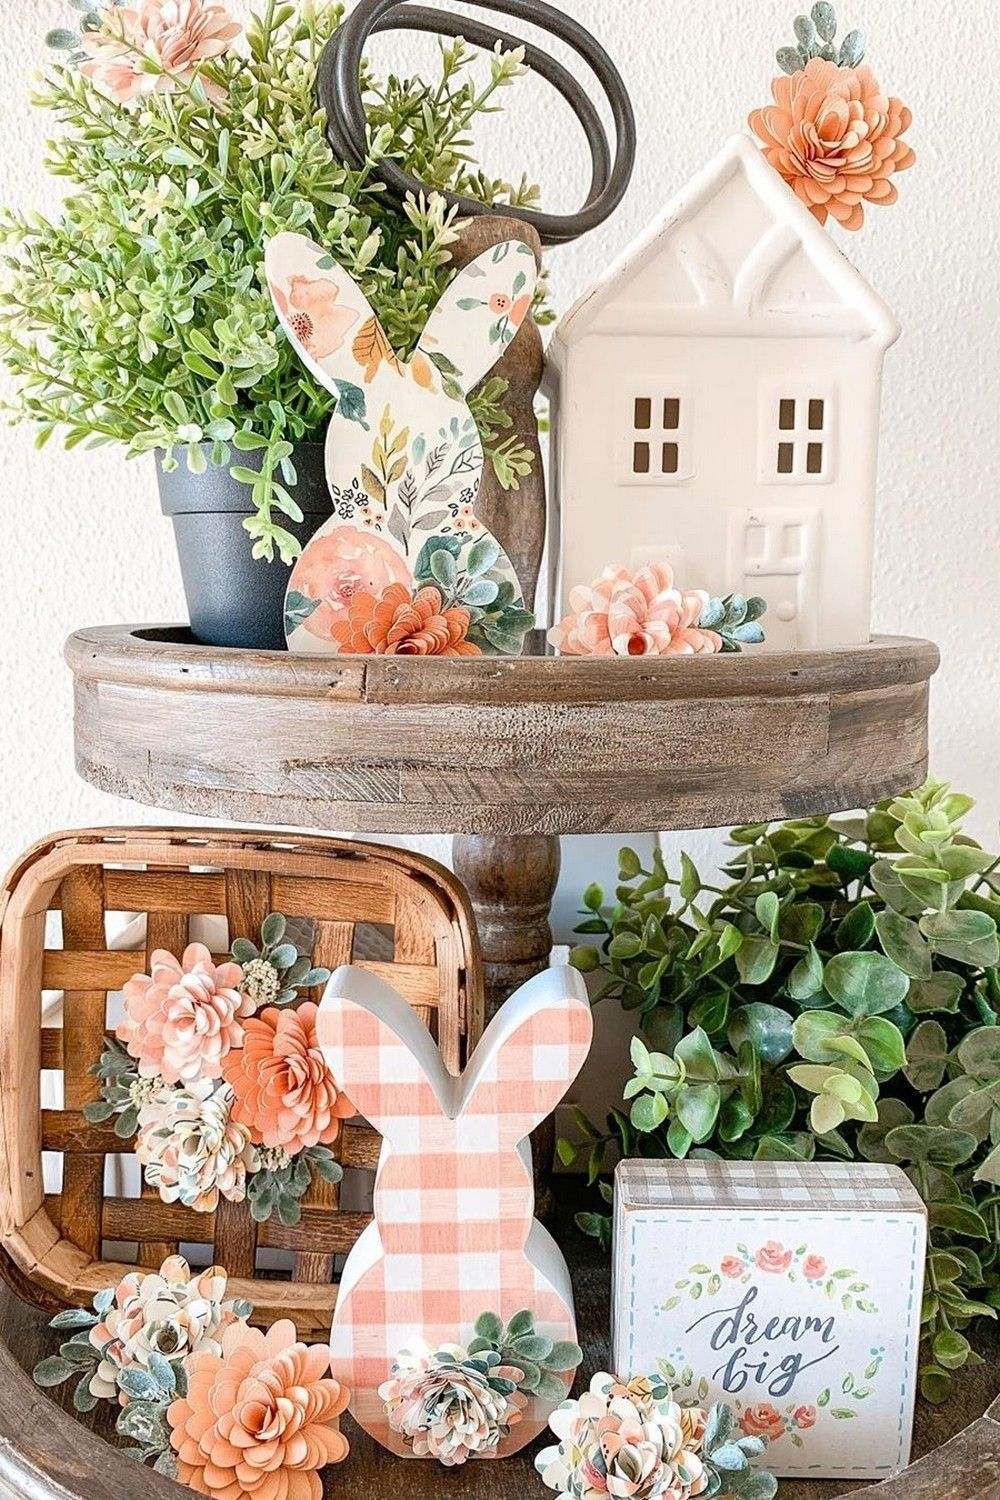 Wonderful Easter Home Design Ideas That You Have To Copy 05